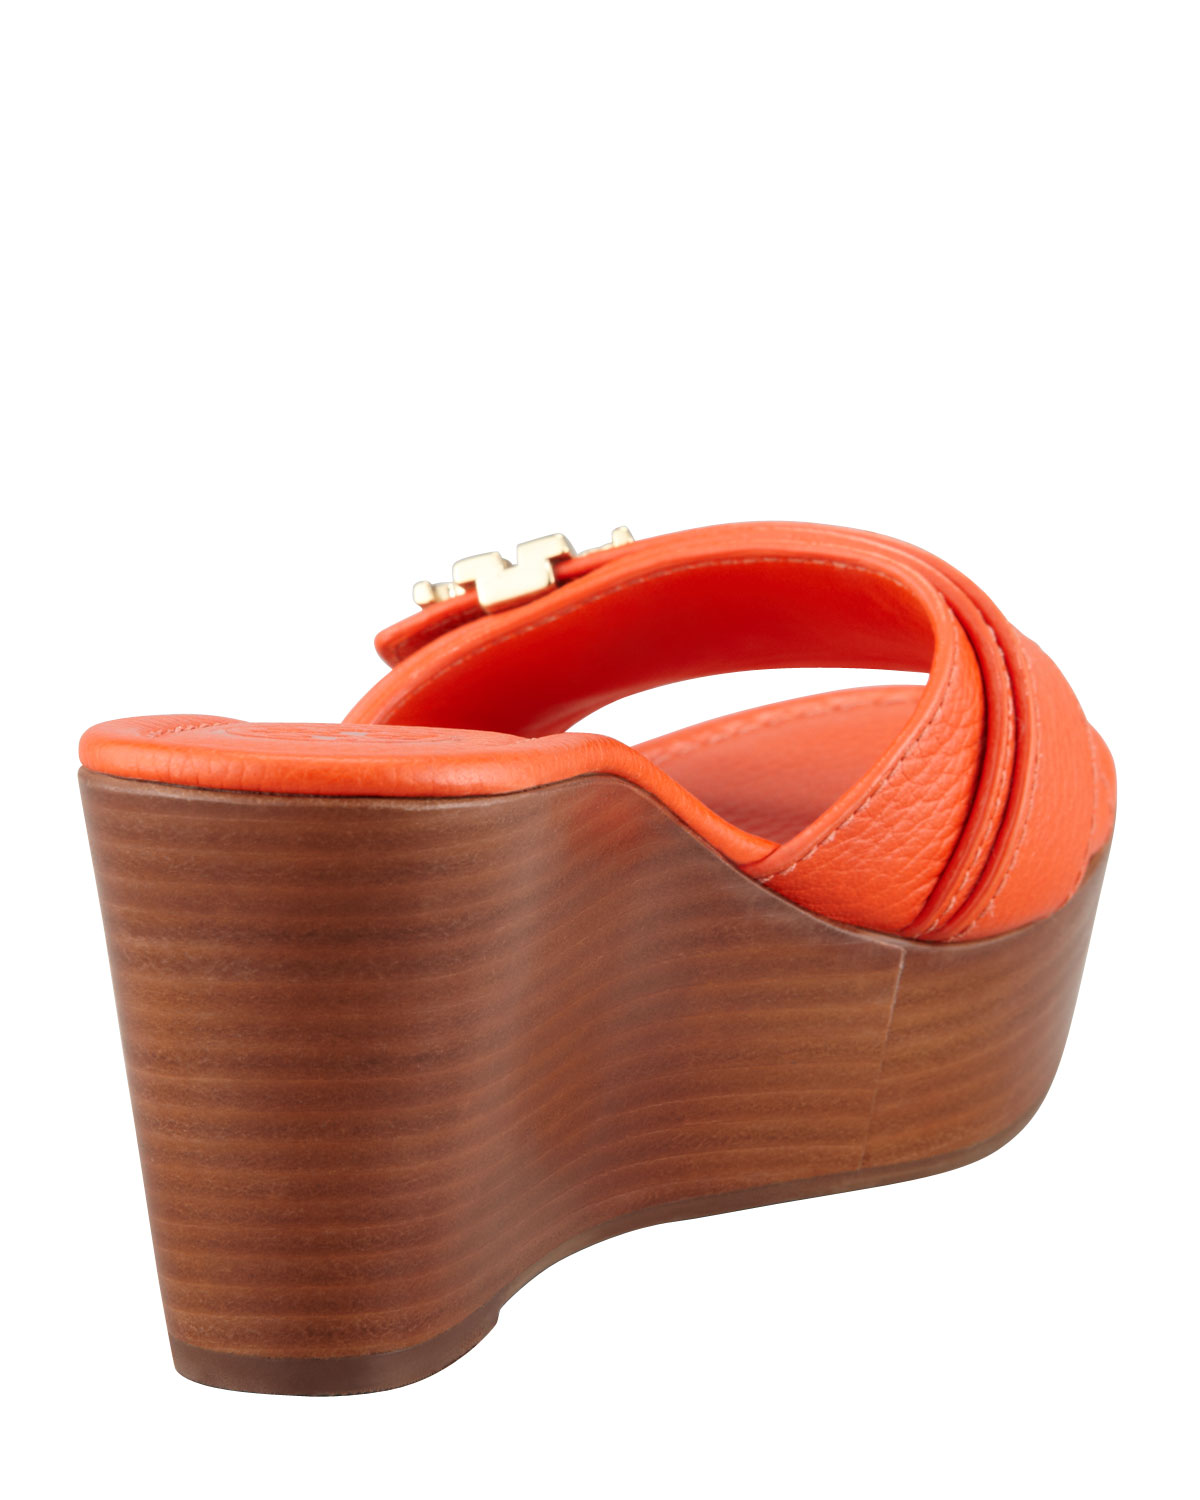 4a2943c2bf566 Lyst - Tory Burch Elina Midwedge Slide Sandal Orange in Orange